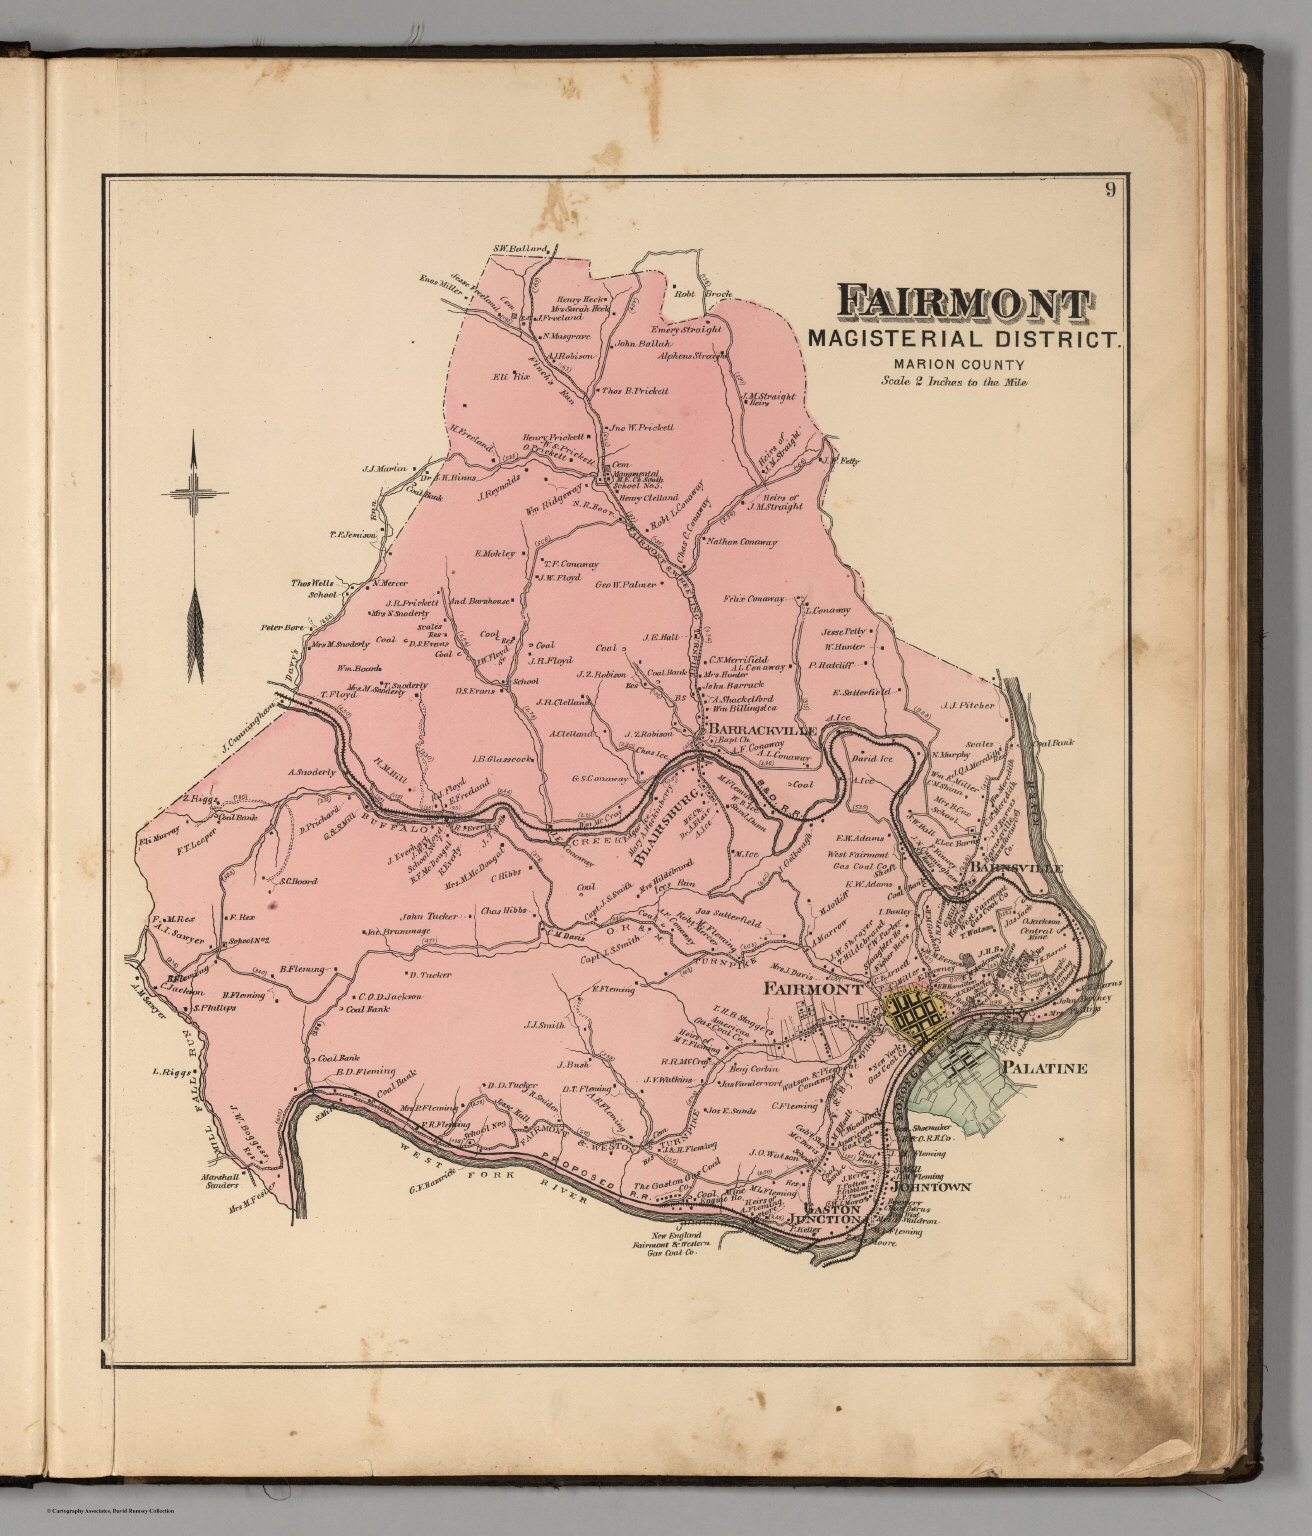 Marion Virginia Map.Fairmont Magisterial District Marion County West Virginia David